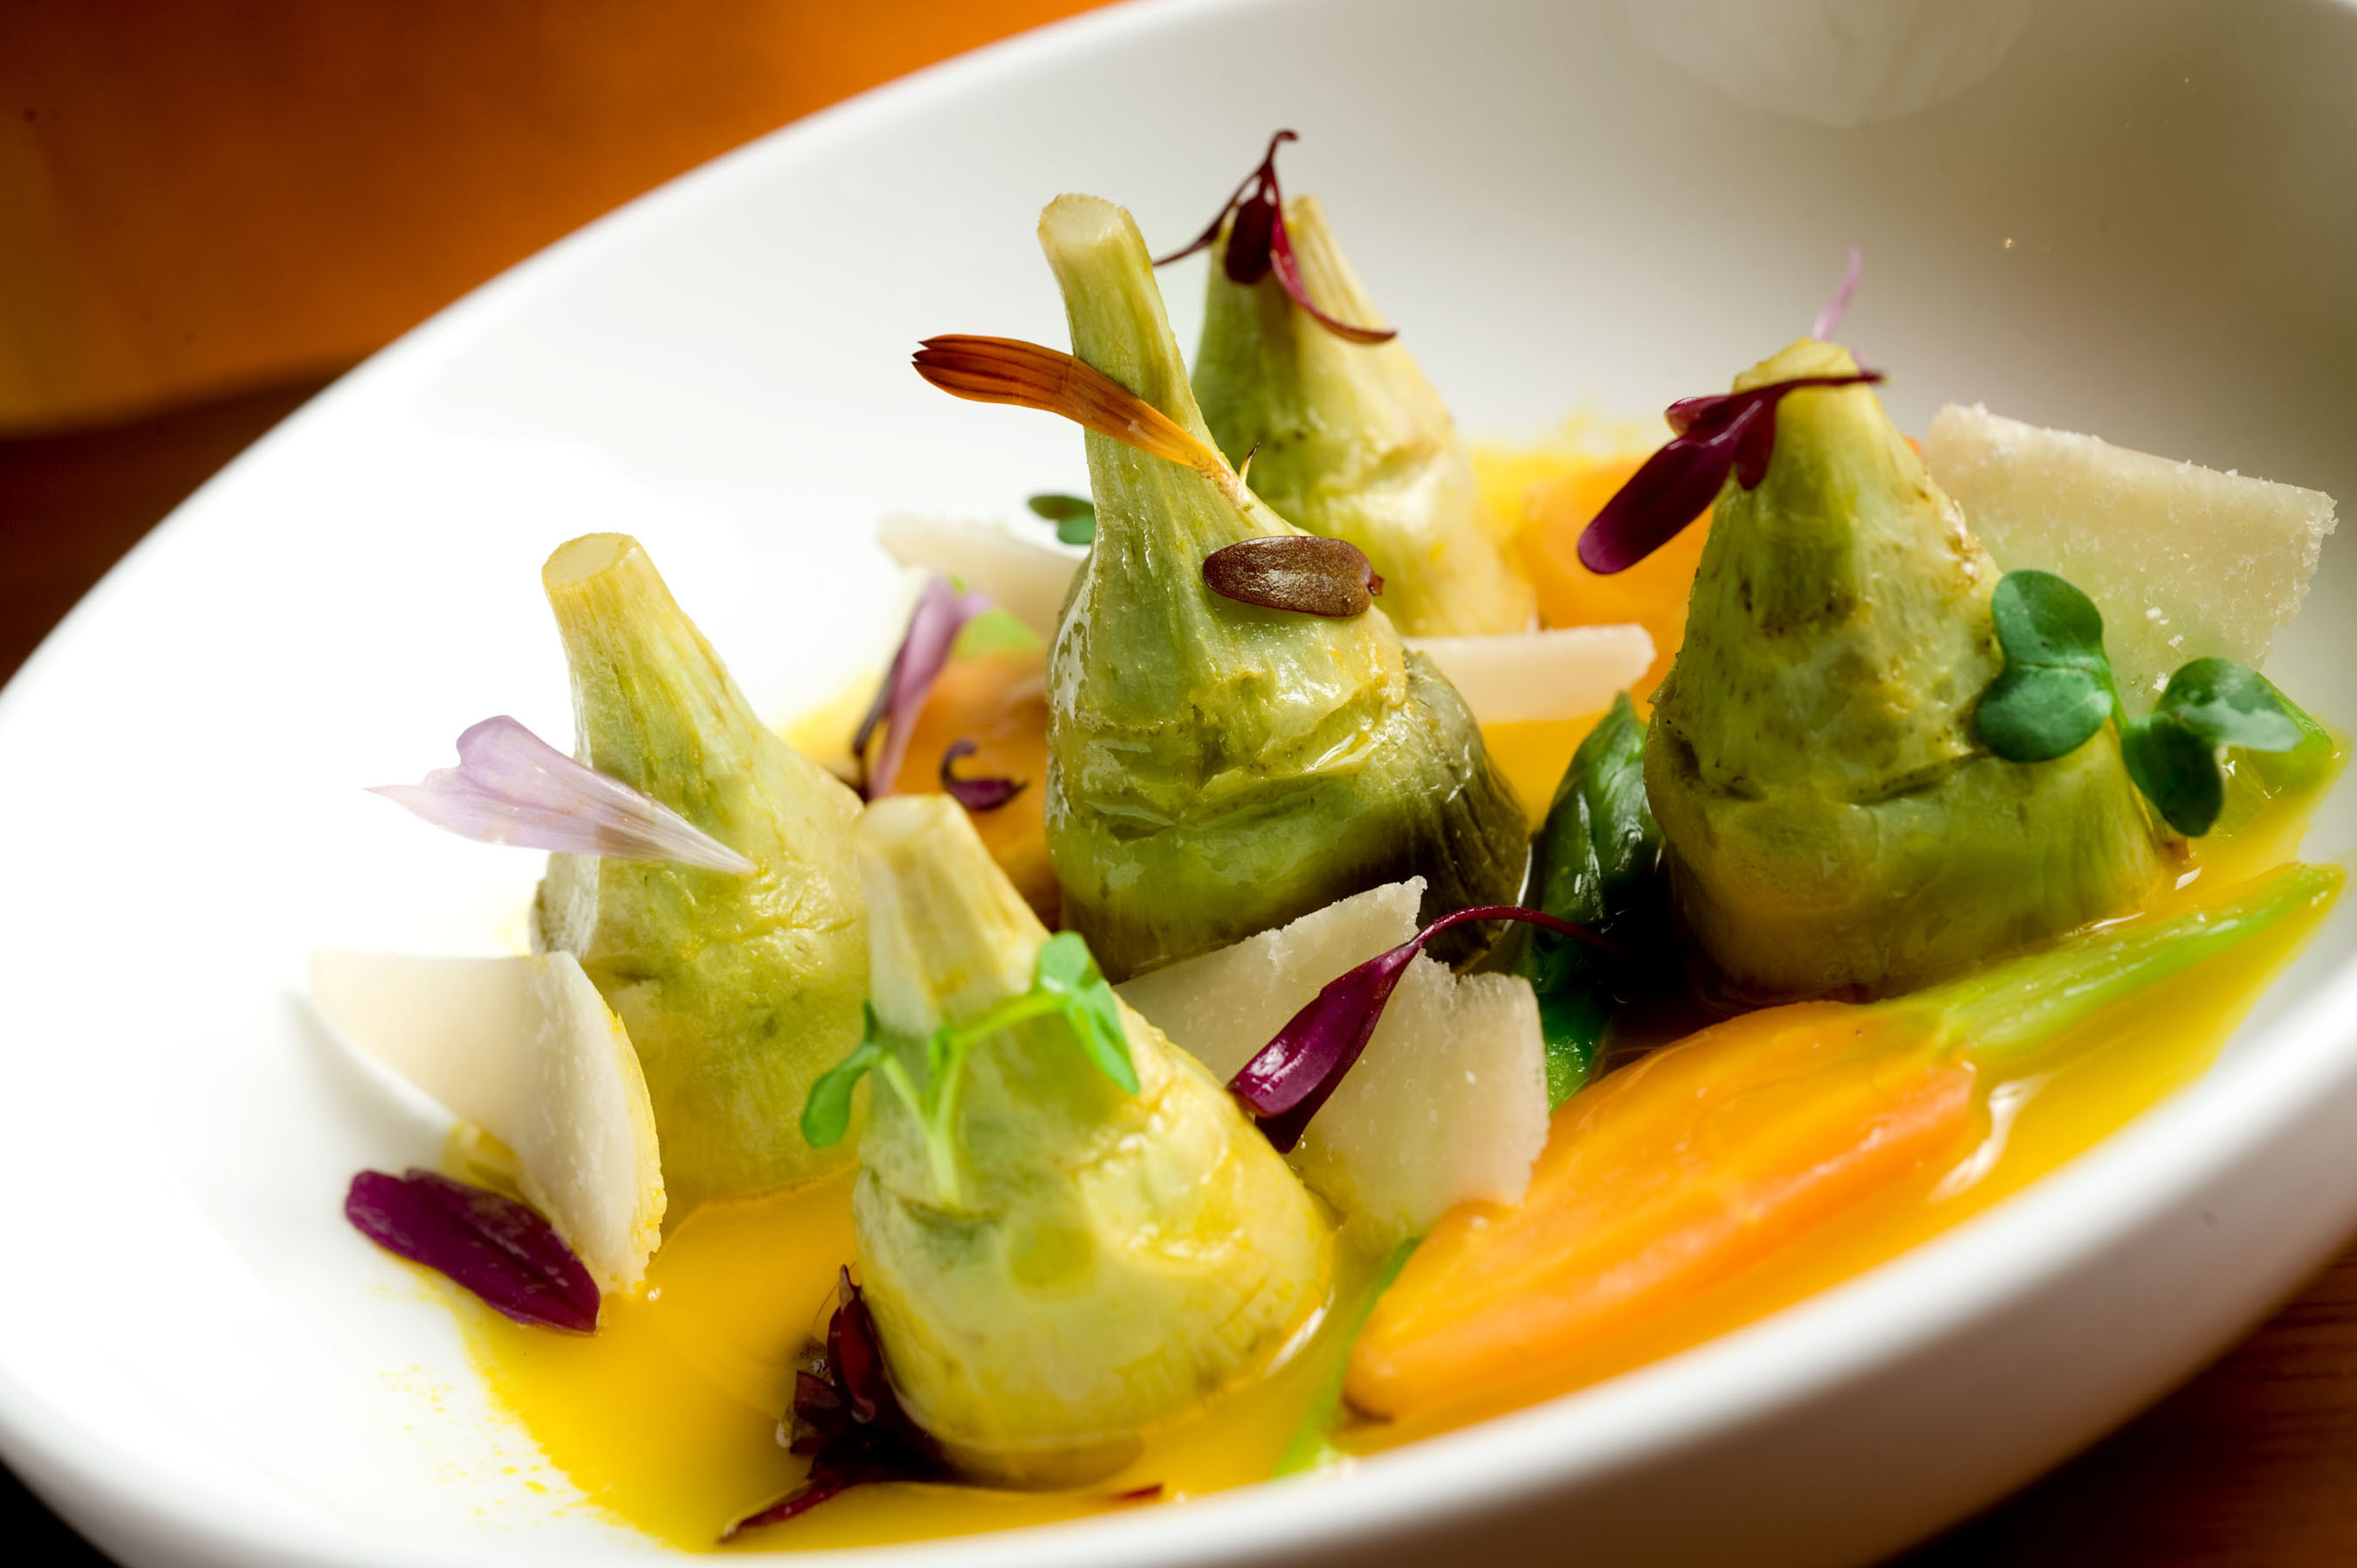 Artichoke Barigoule with asparagus, baby carrots and basil